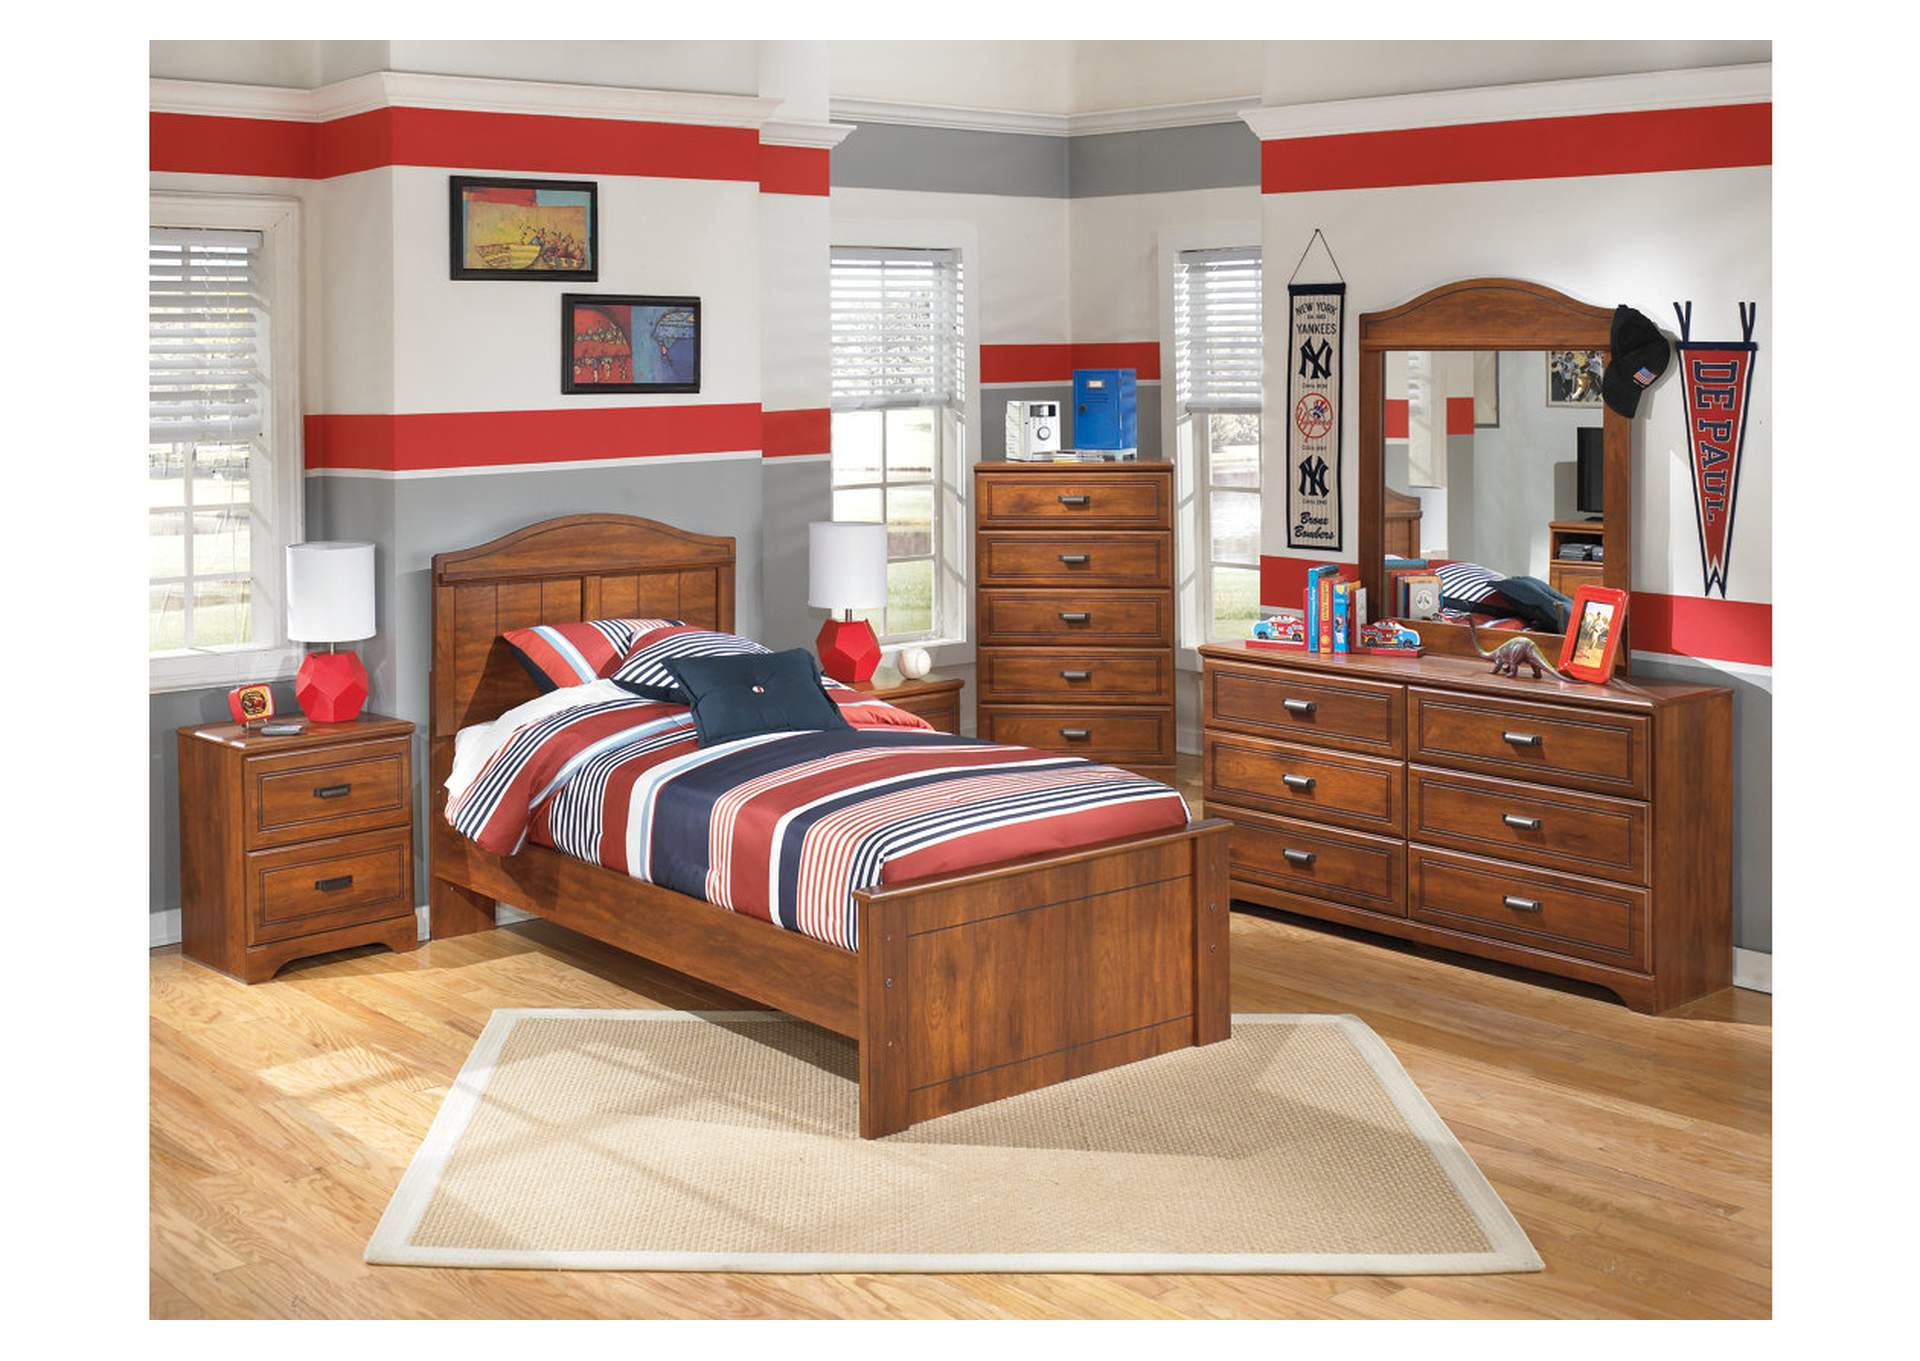 Barchan Twin Panel Bed w/Dresser & Mirror,Signature Design by Ashley